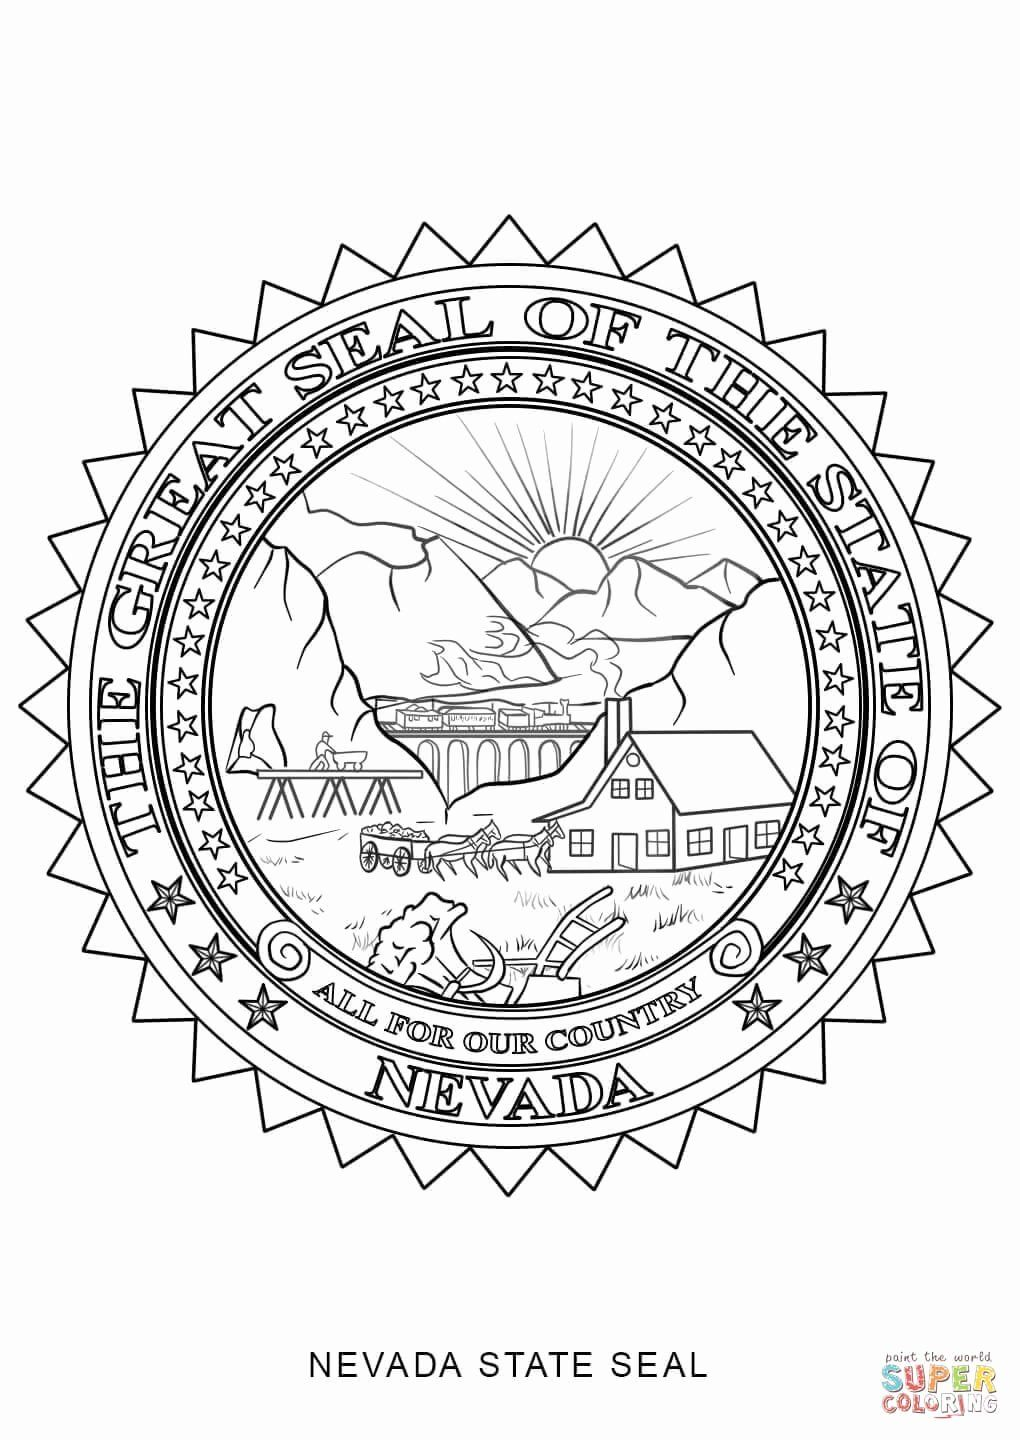 virginia state symbols coloring pages virginia state flag coloring page luxury nevada state seal pages state symbols virginia coloring